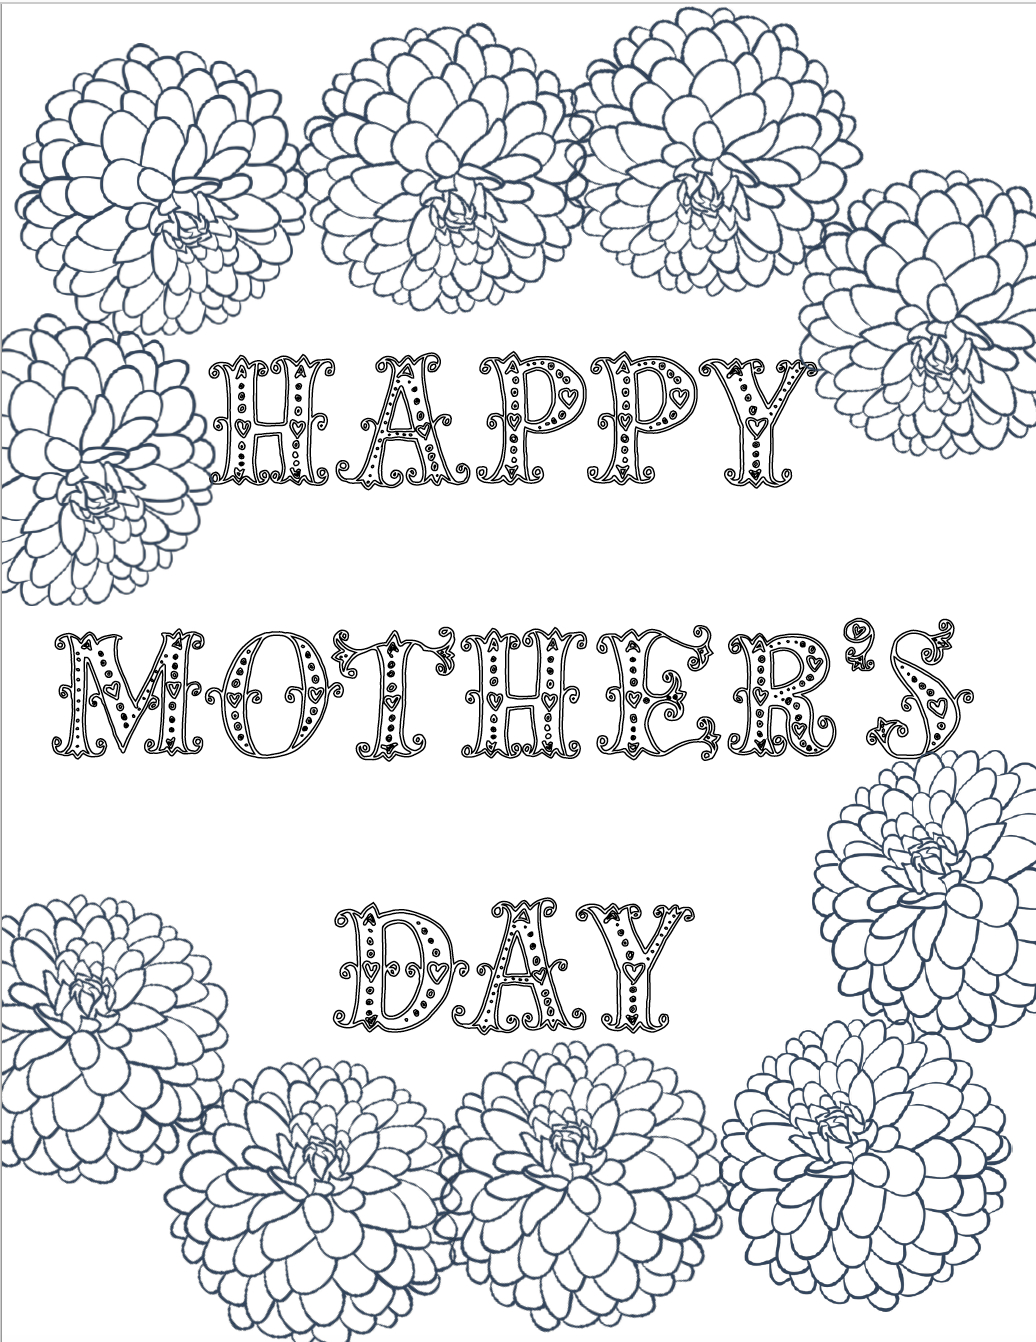 Free Printable Mother's Day Coloring Pages: 4 Designs - Free Printable Mothers Day Coloring Pages